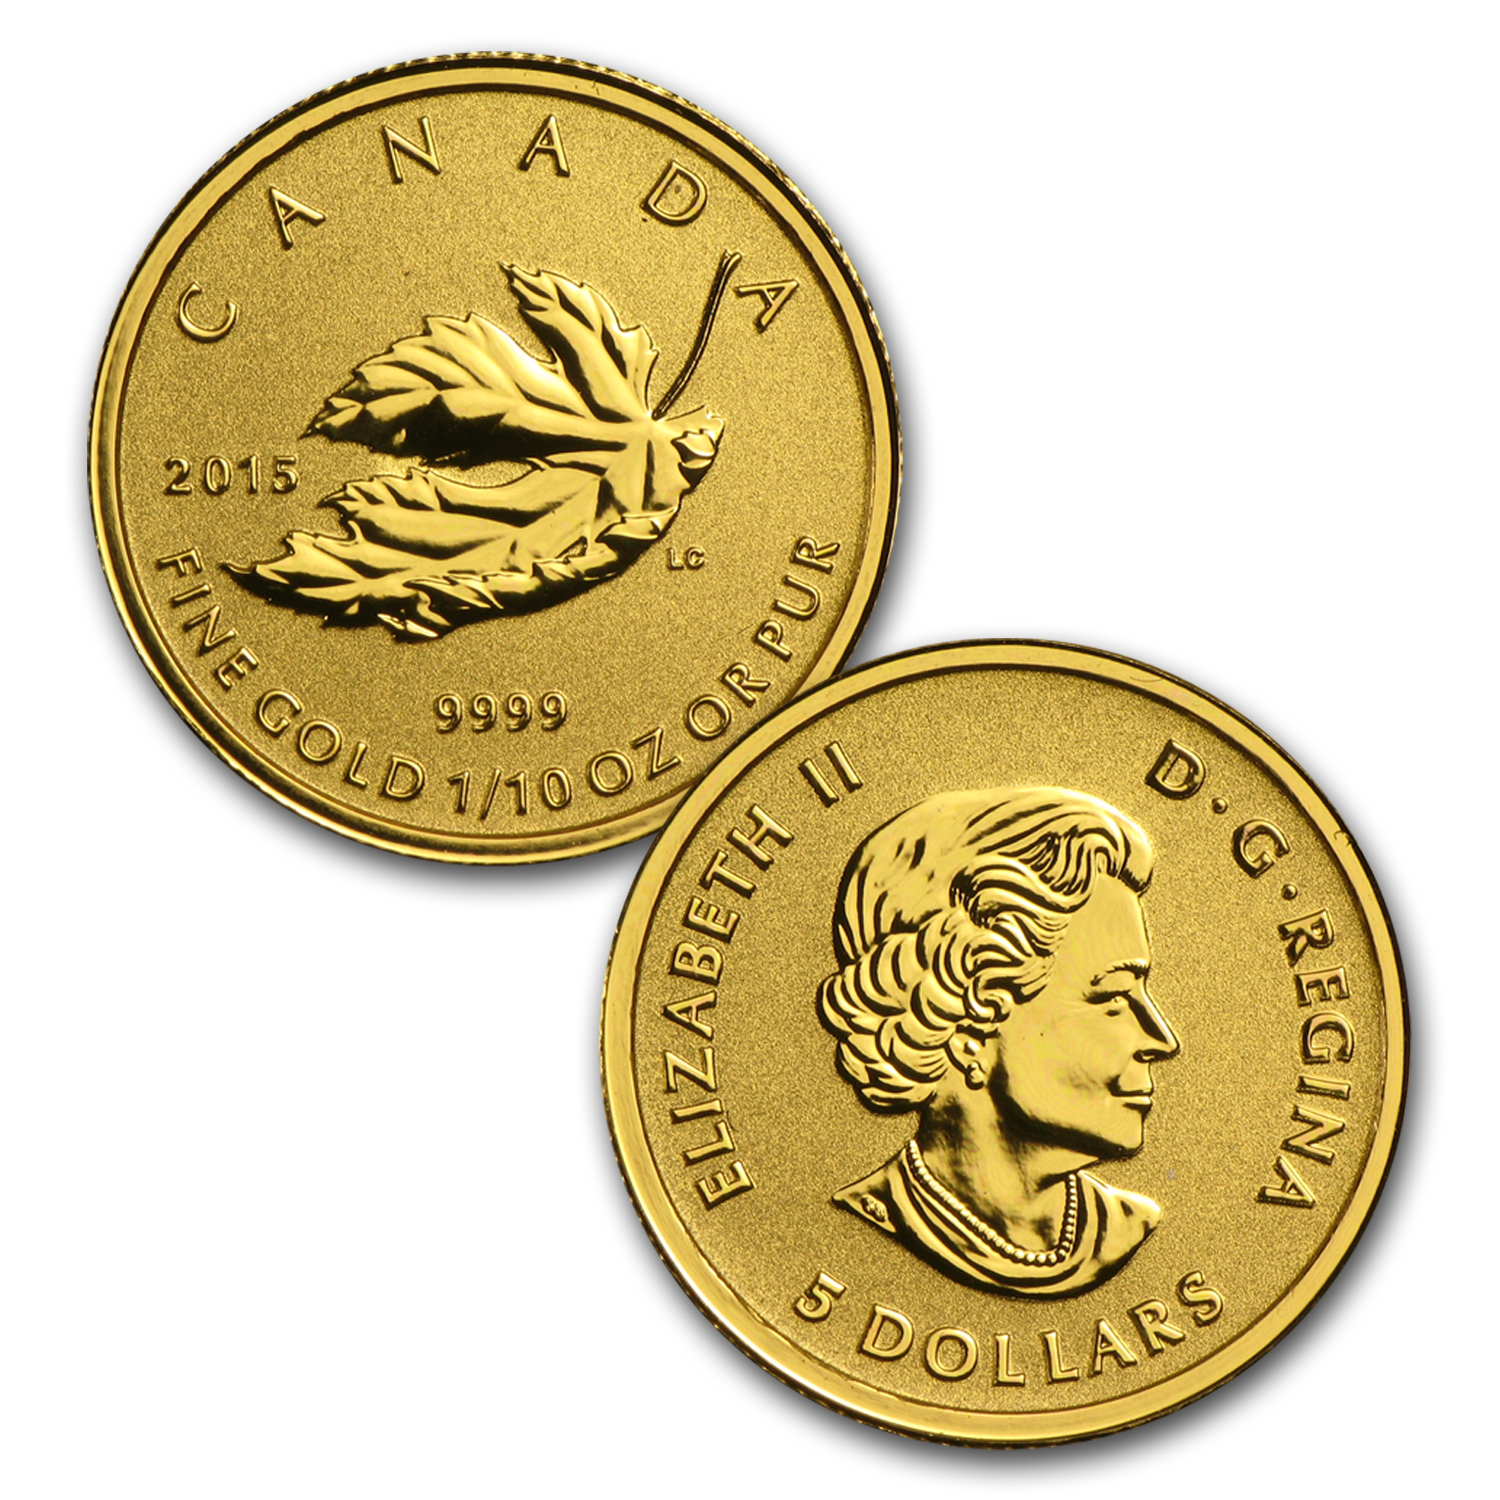 2015 Canada 4-Coin Gold Fractional Maple Leaf Set (1.4 oz)